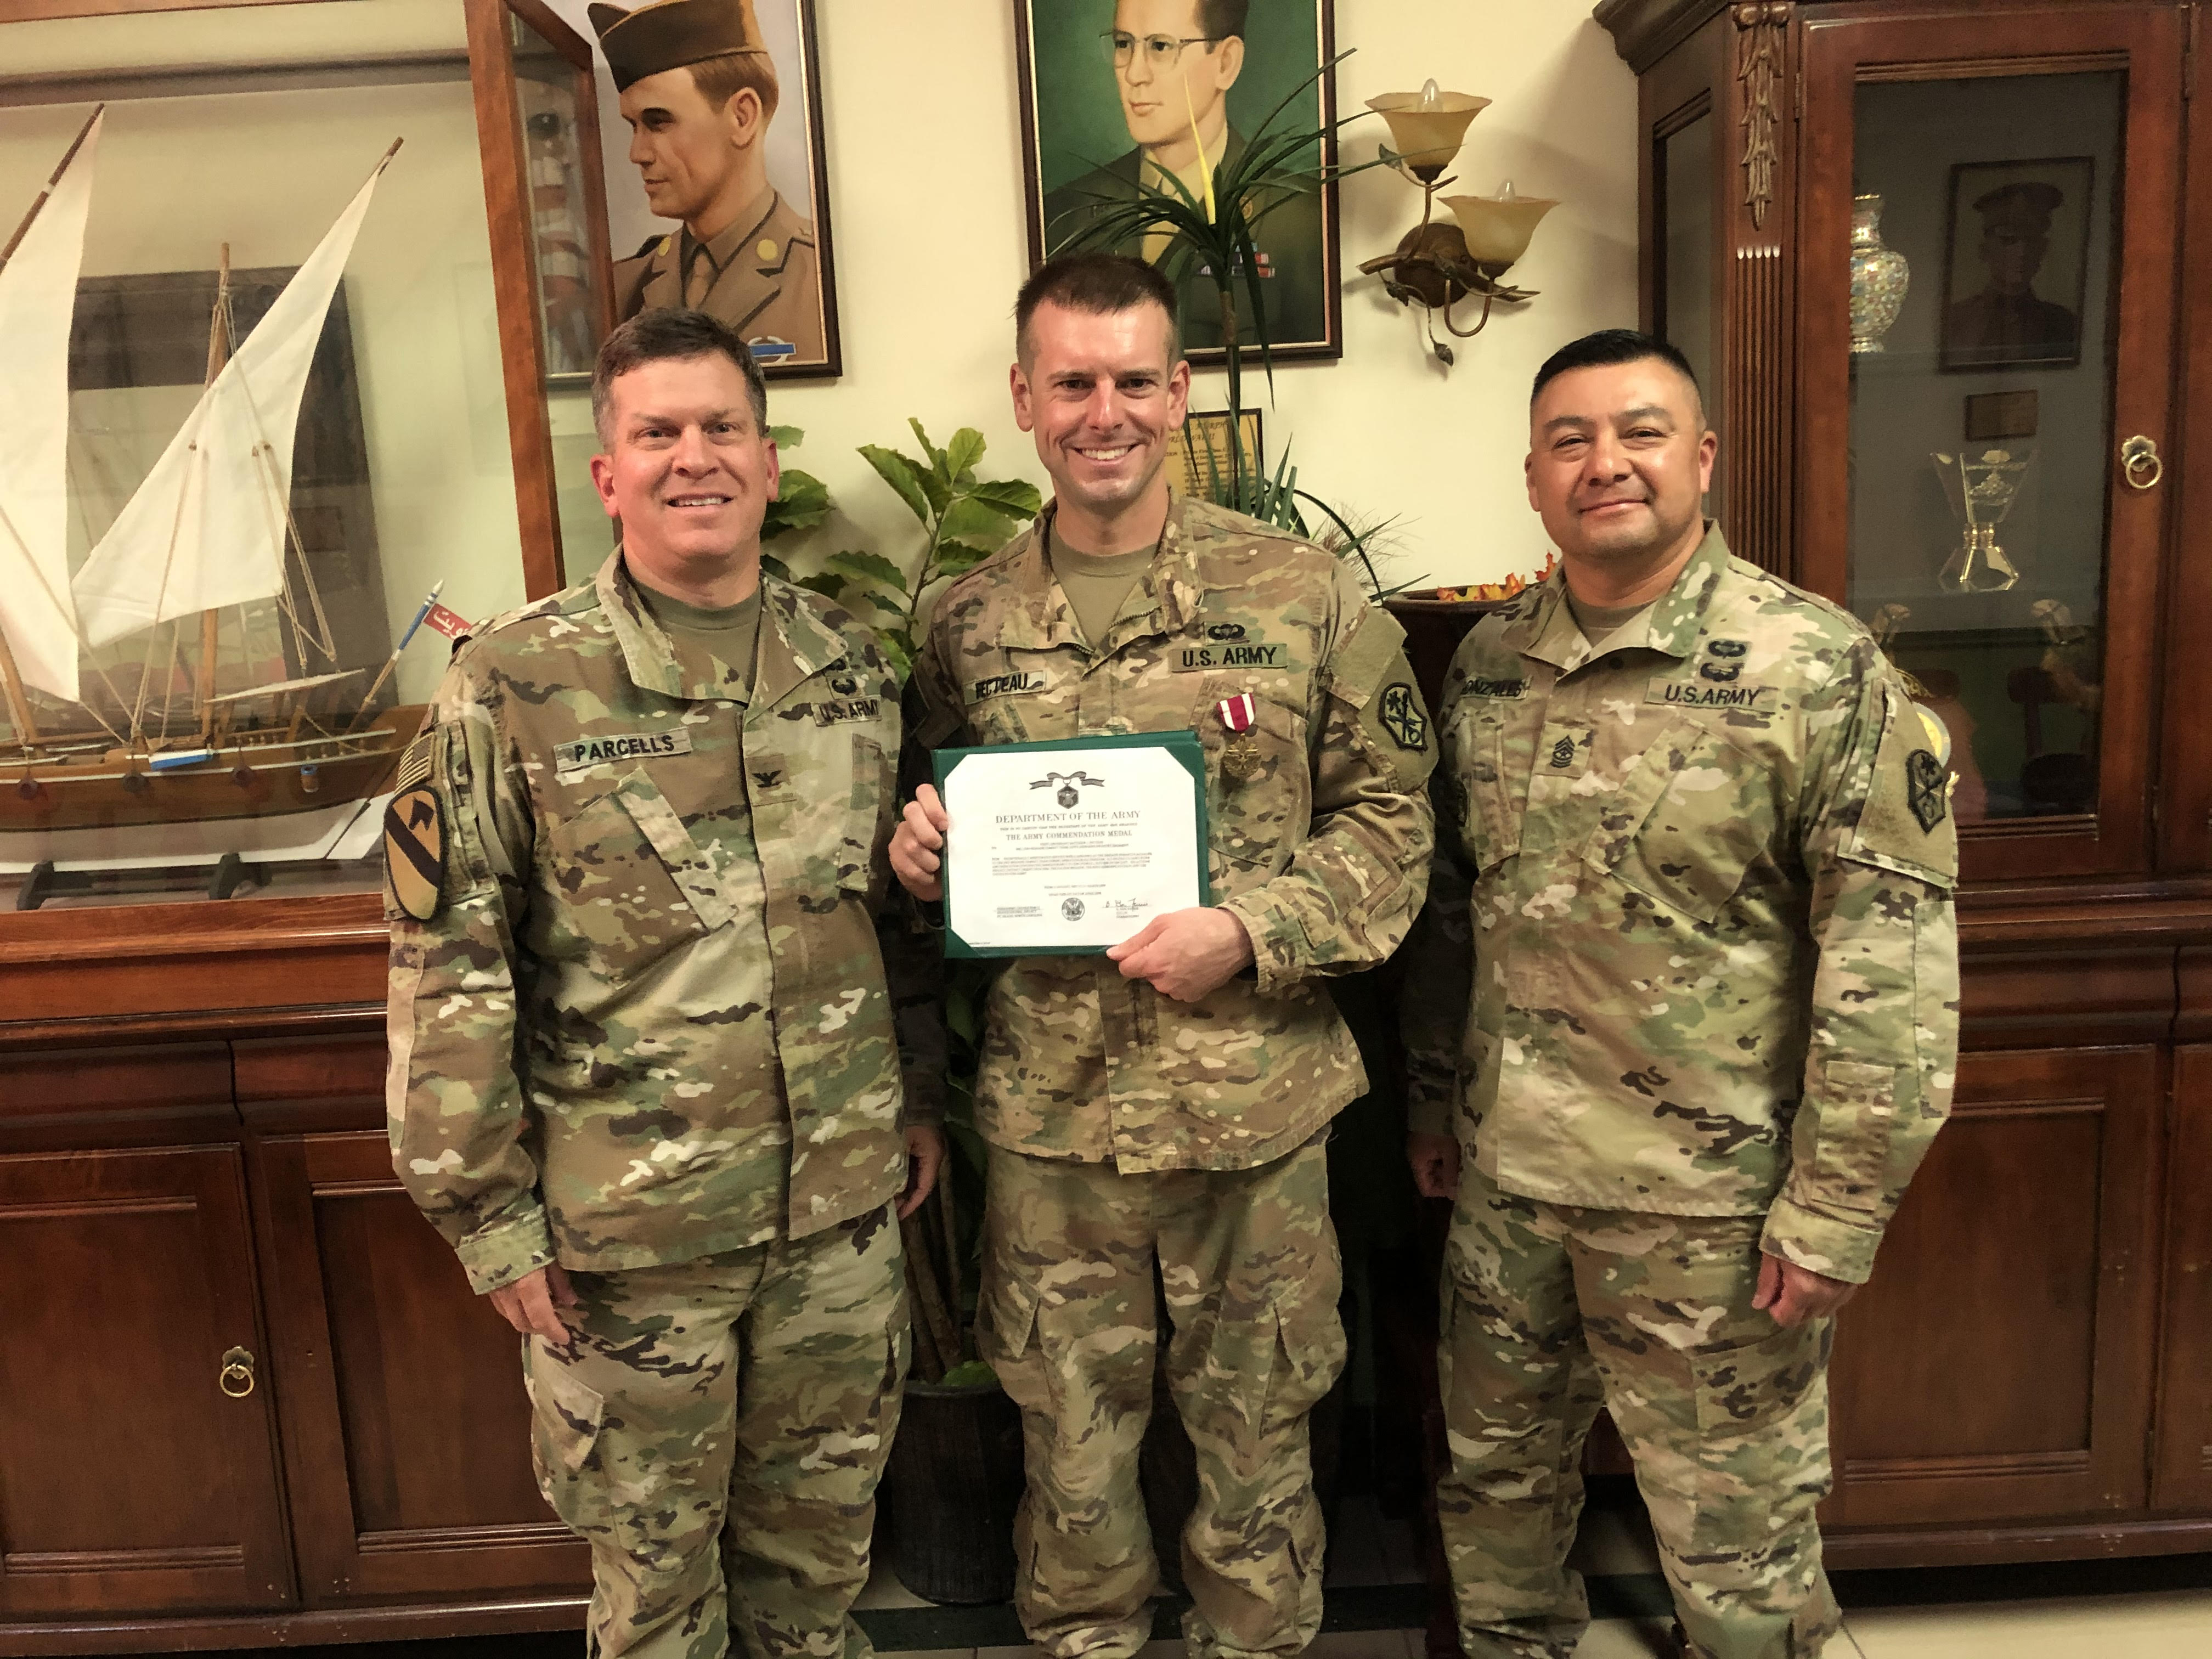 Fecteau Awarded the Meritorious Service Medal